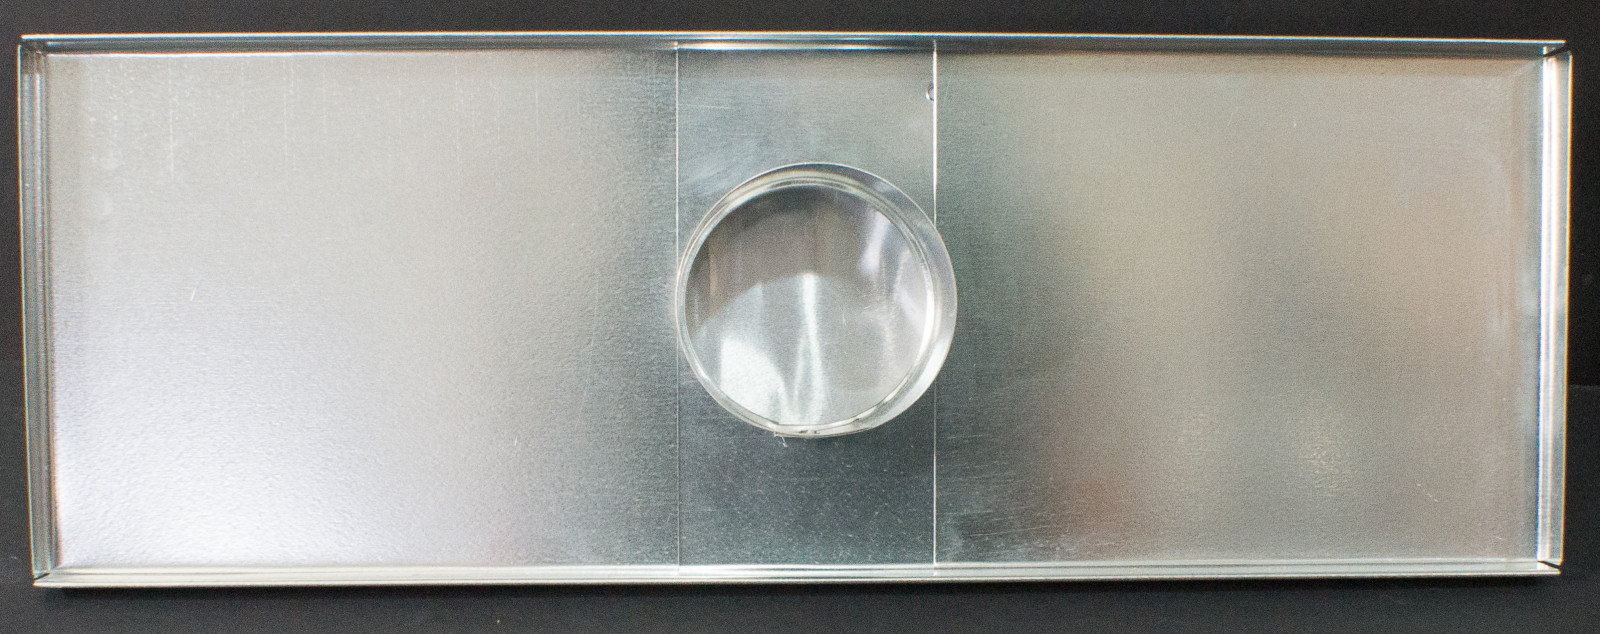 Vent Works Window Vent Insert 4 Inch Review